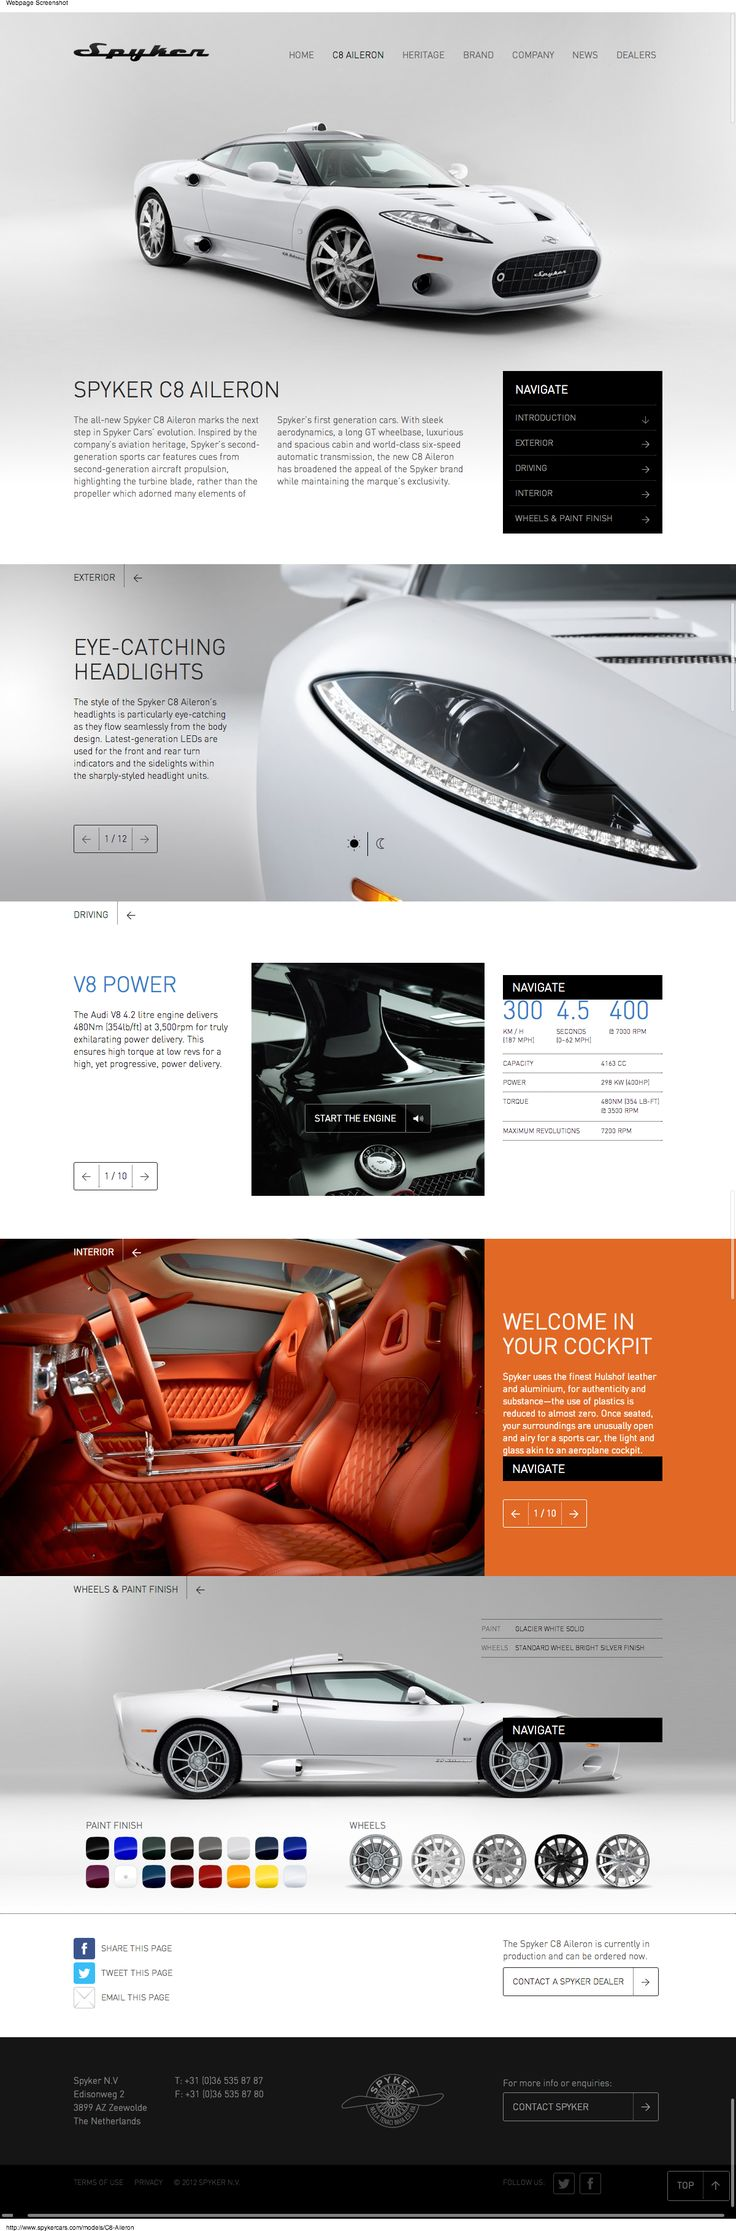 Spyker Cars, #inspiration #web #design #layout #userinterface #website #webdesign <<< repinned by www.BlickeDeeler.de Follow us on Facebook  >>> www.facebook.com/BlickeDeeler